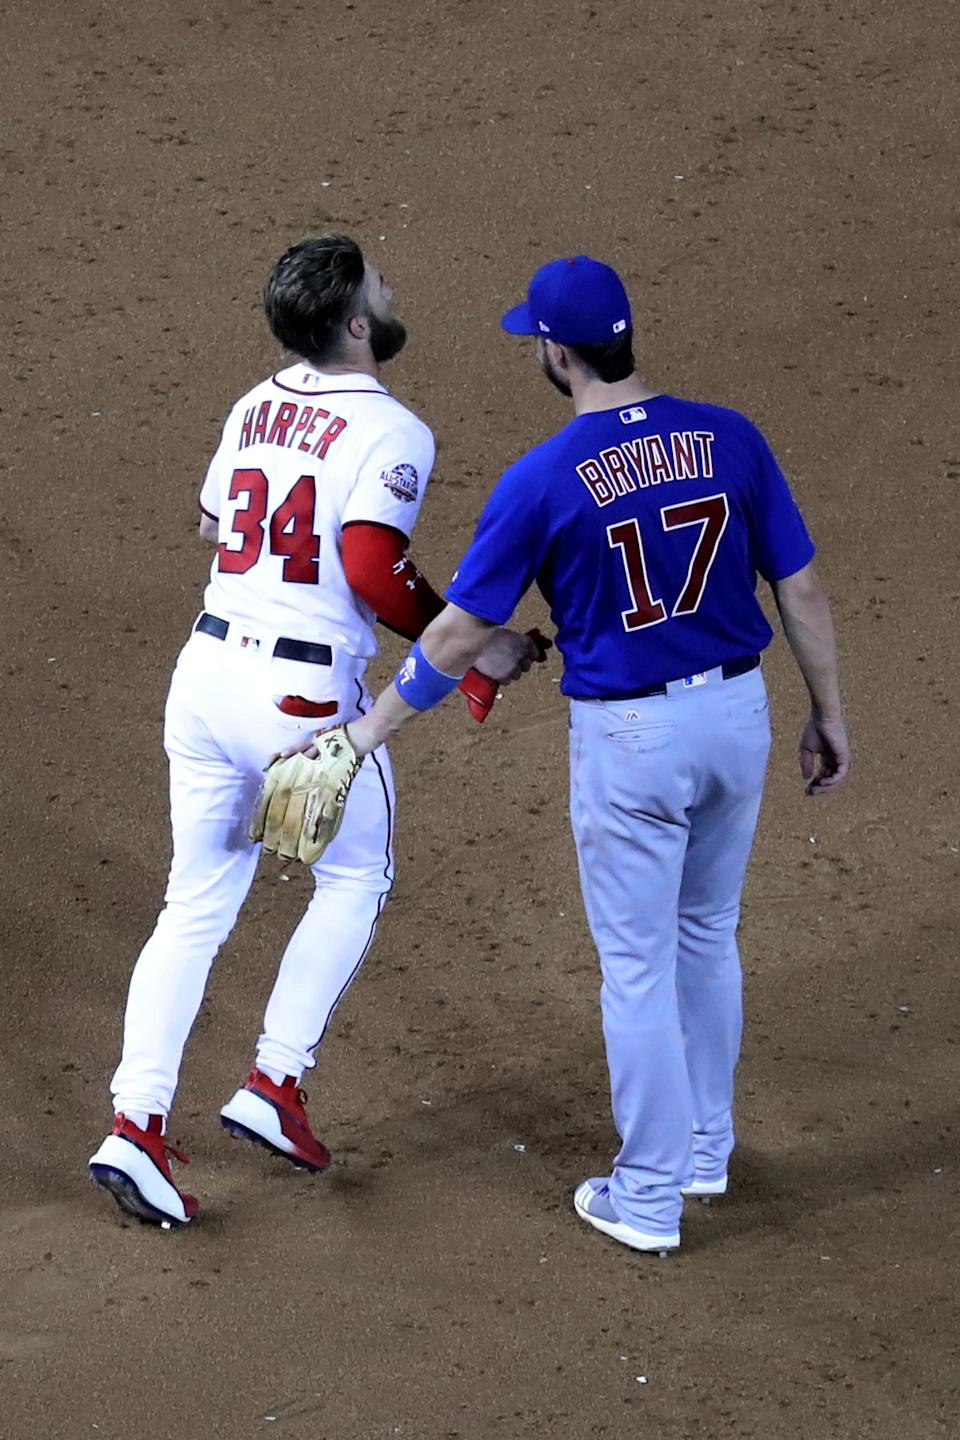 WASHINGTON, DC – SEPTEMBER 6: Bryce Harper #34 of the Washington Nationals talks with Kris Bryant #17 of the Chicago Cubs at Nationals Park on September 6, 2018 in Washington, DC. (Photo by Rob Carr/Getty Images)